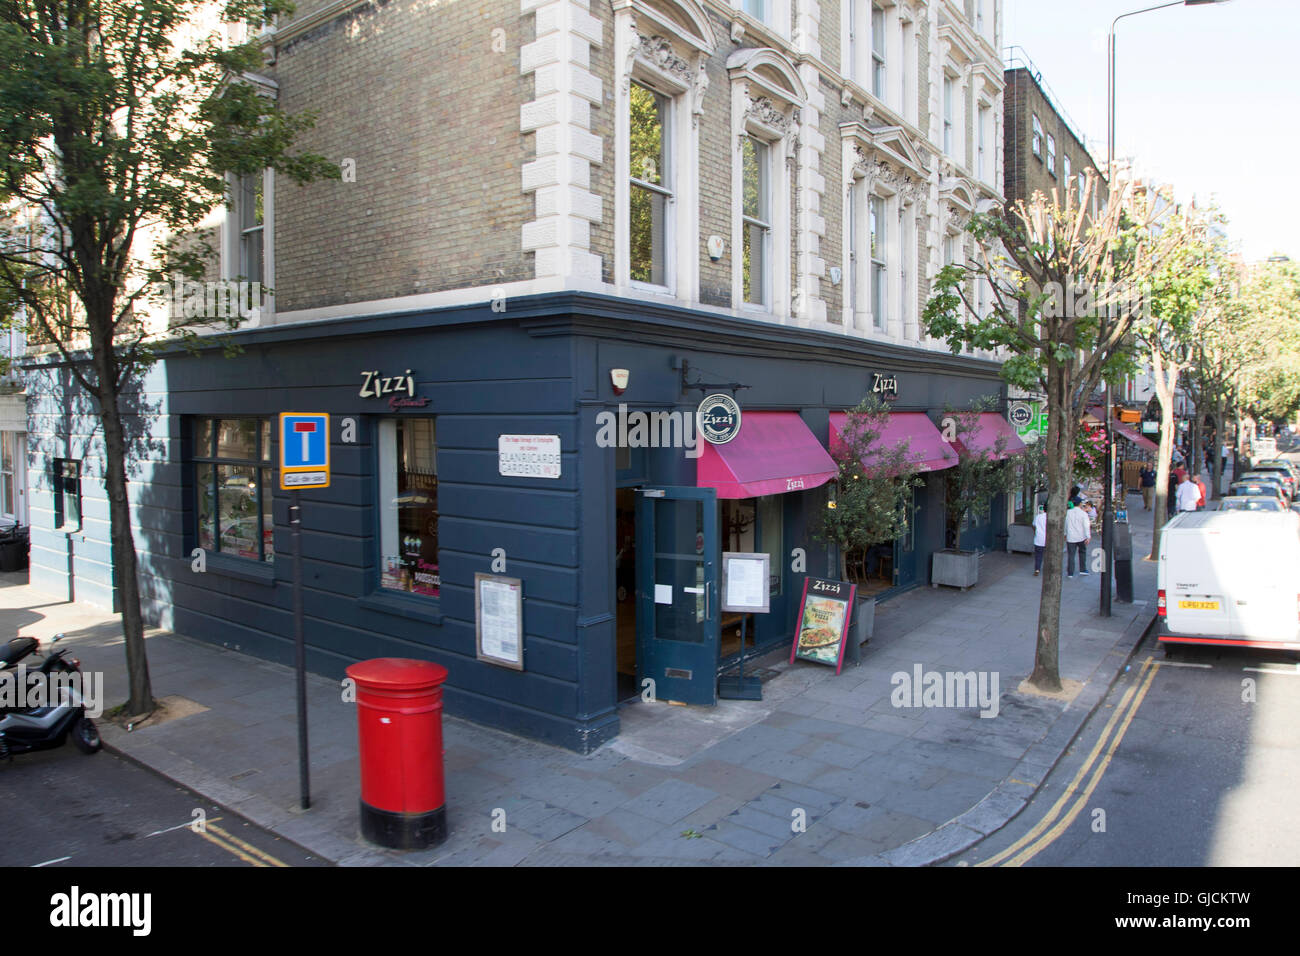 Zizzi restaurant in the Royal Borough of Kensington and Chelsea and the City of Westminster Greater Central London - Stock Image